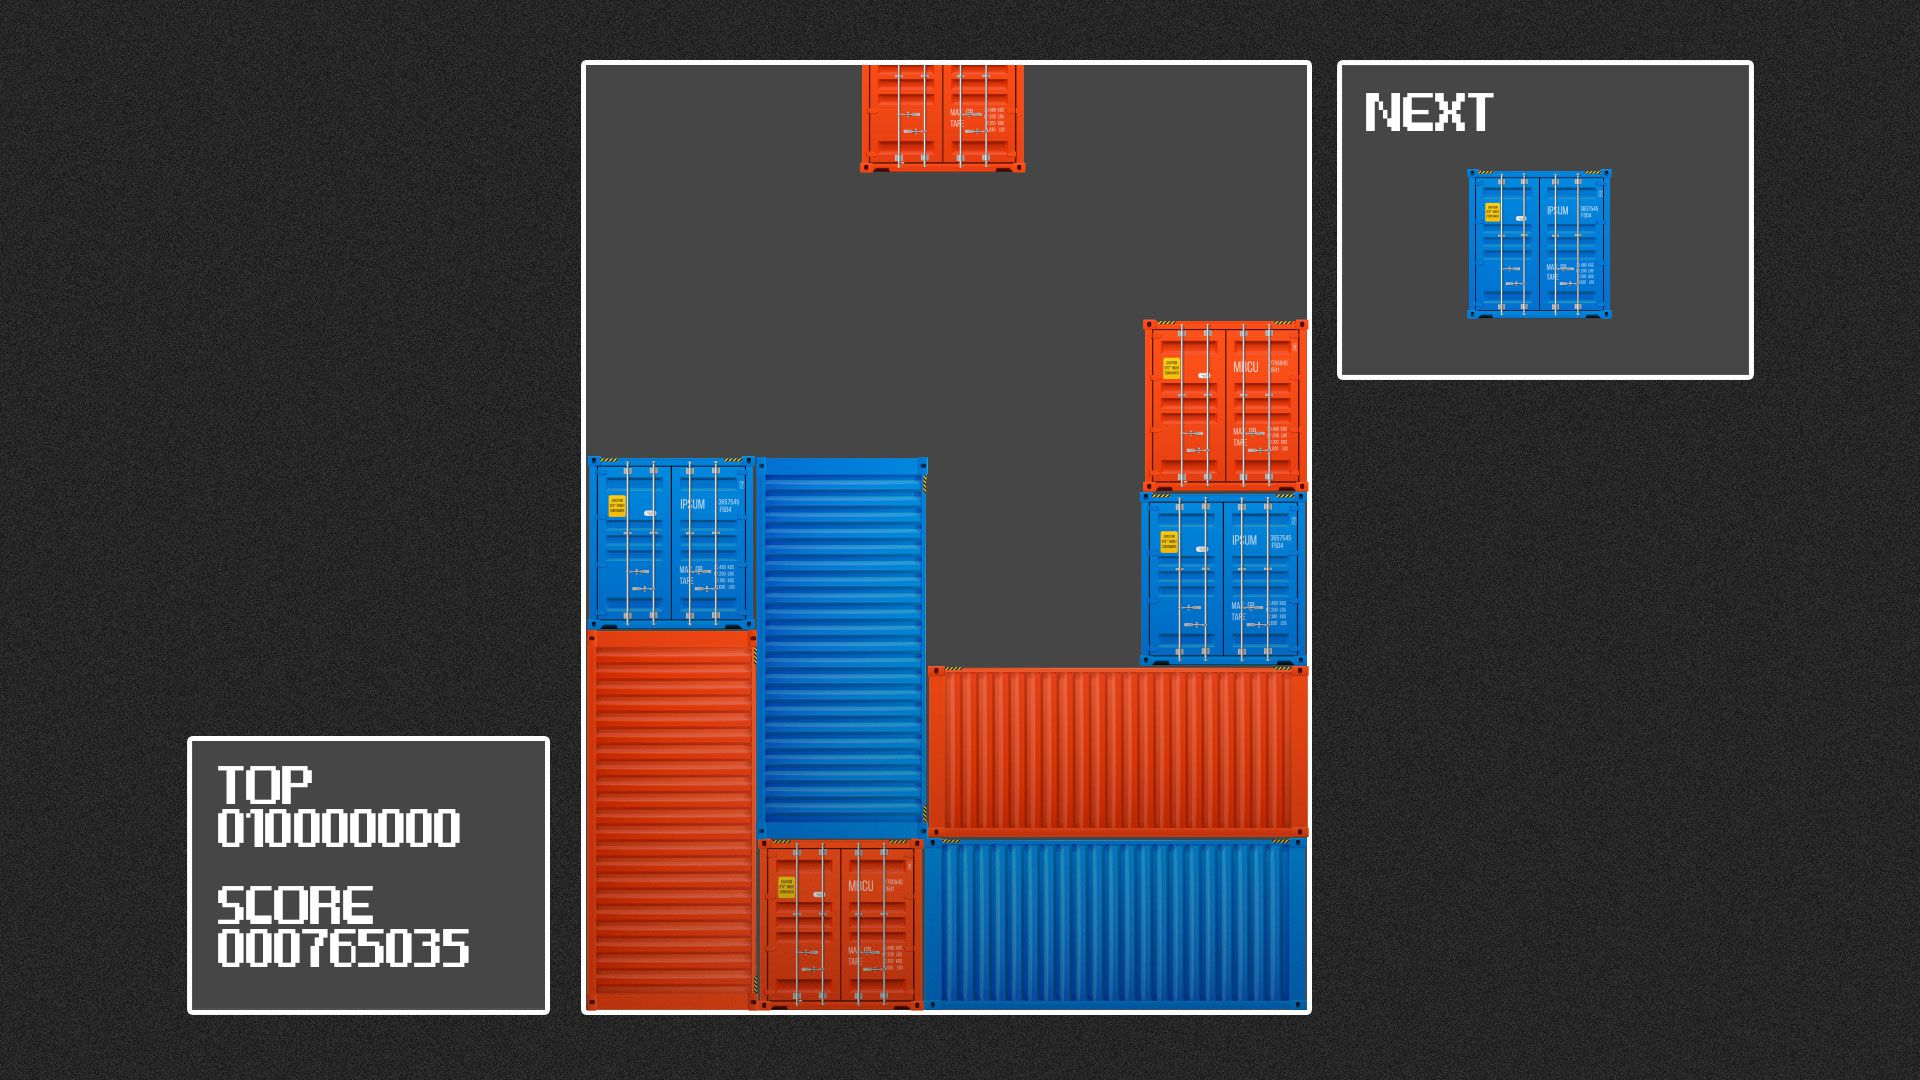 Illustration of a Tetris interface with red and blue shipping containers as the blocks.